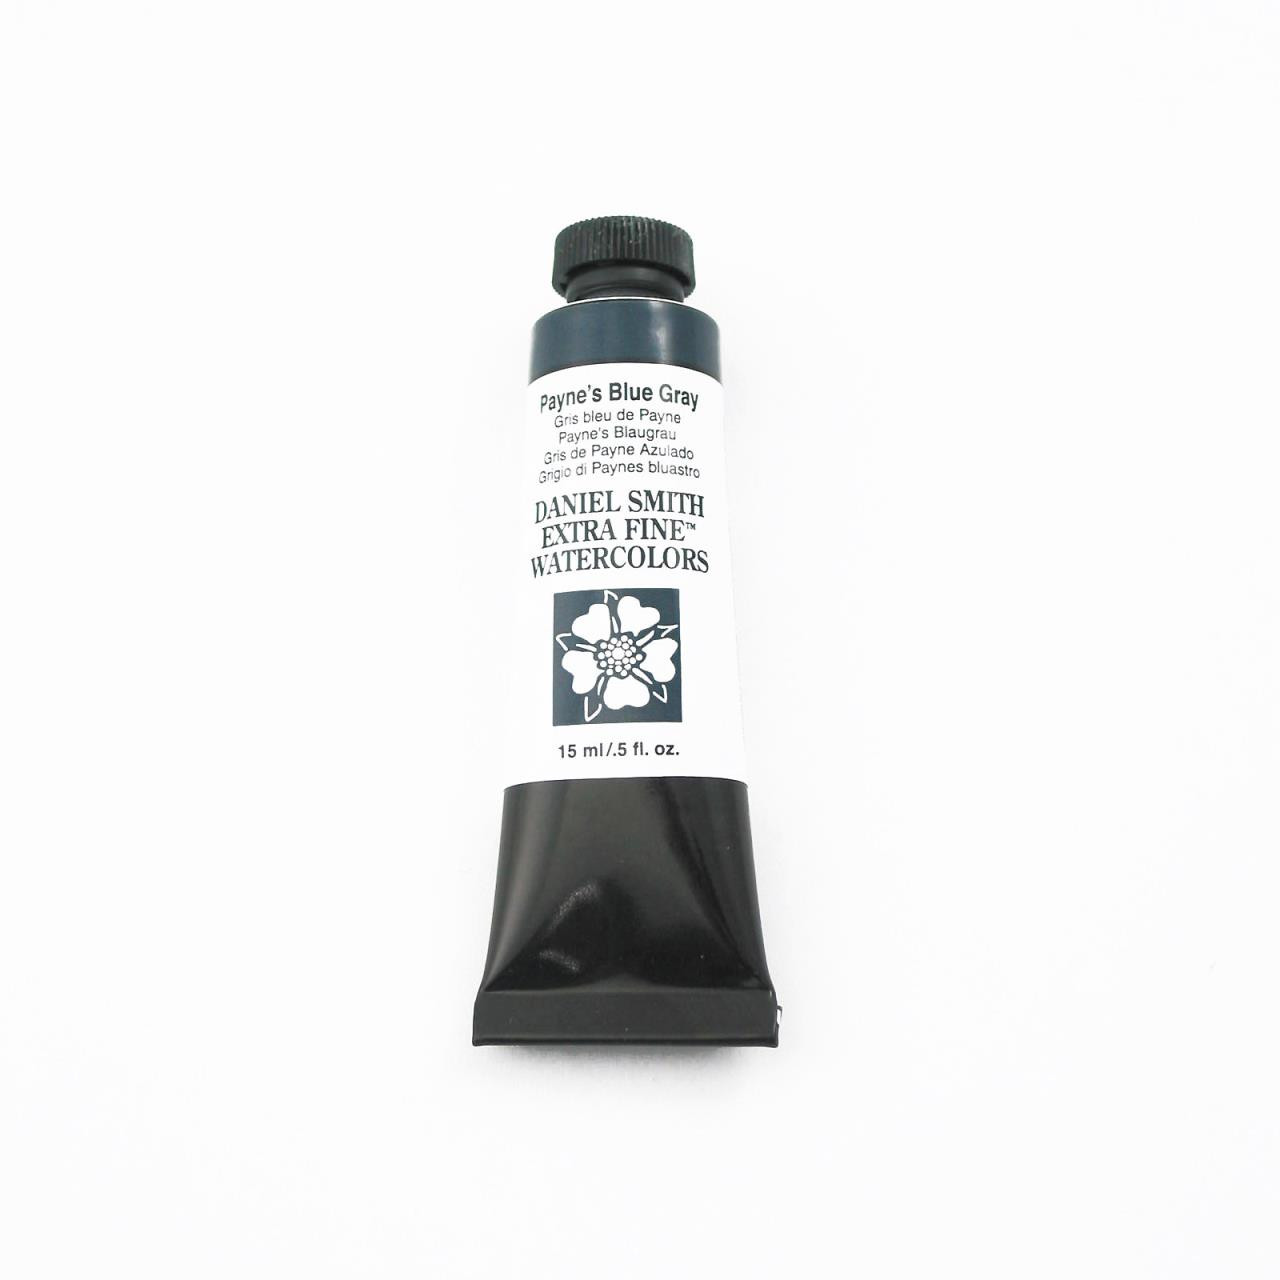 DANIEL SMITH Extra Fine Watercolors 15ml Tubes, Payne's Blue Gray - 743162033379